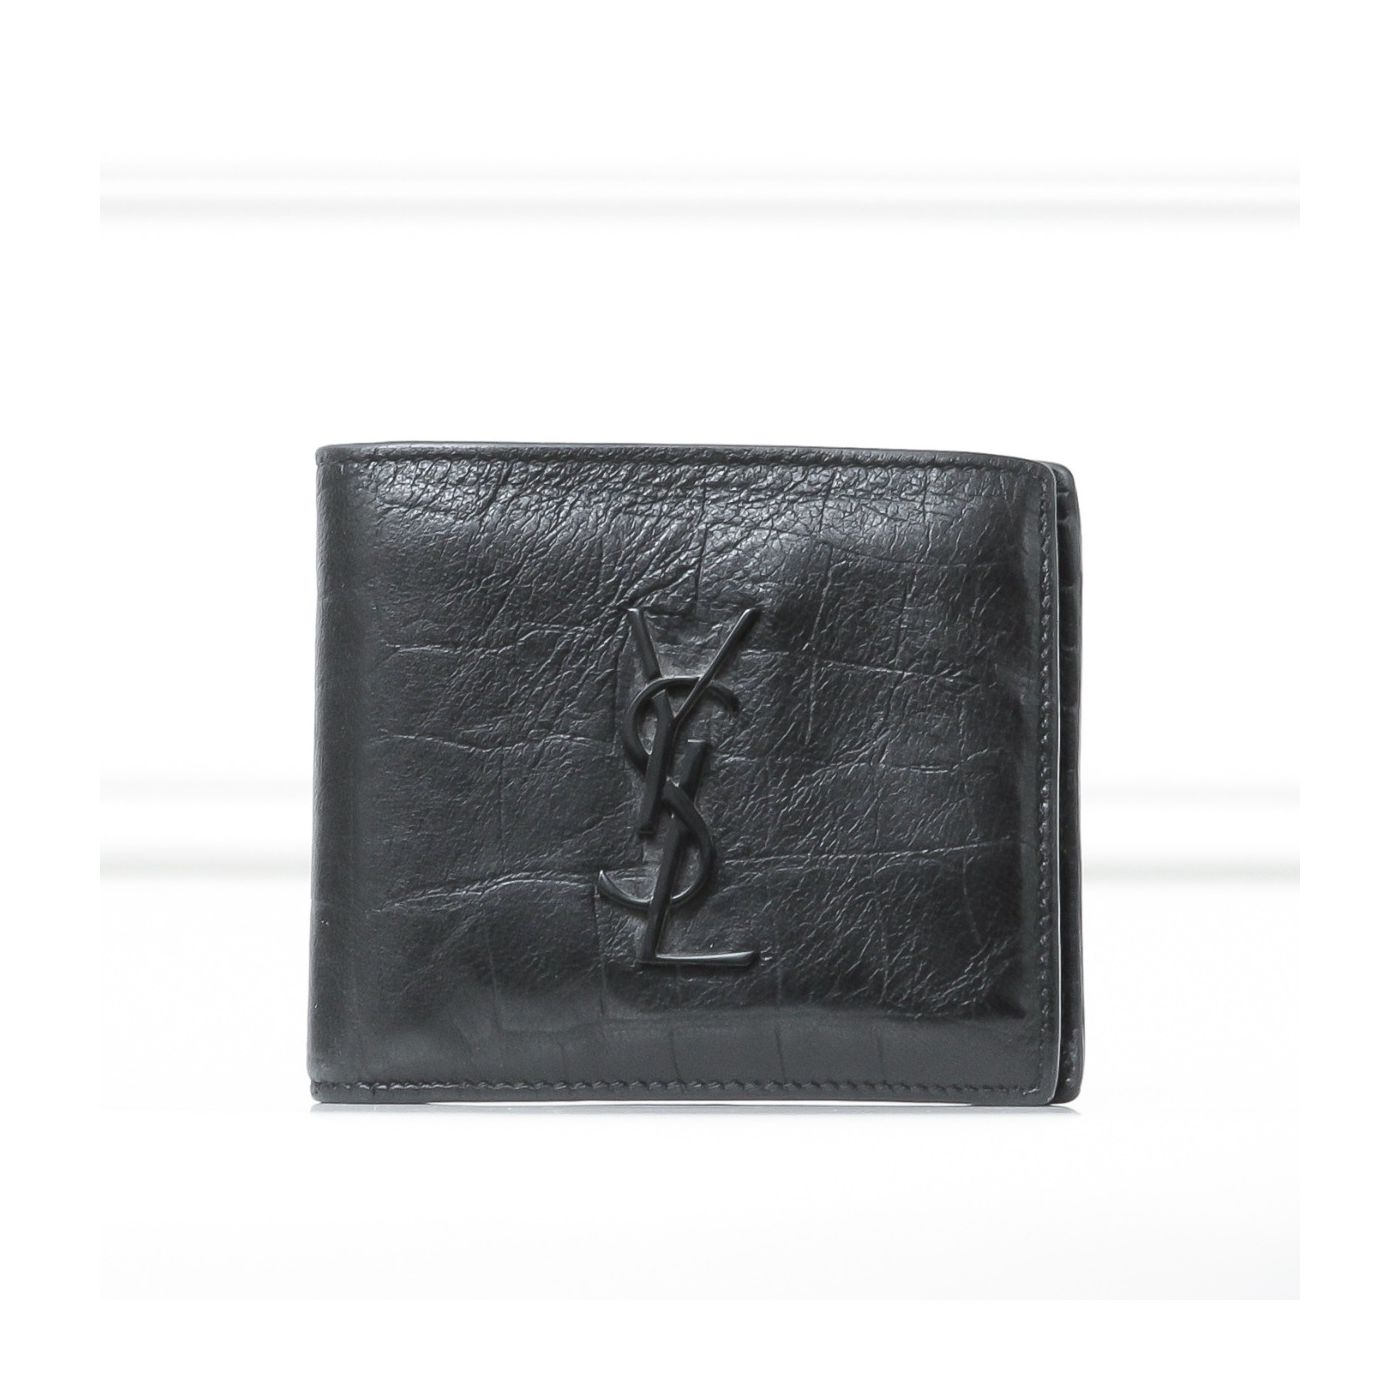 YSL Black East West Men's Wallet